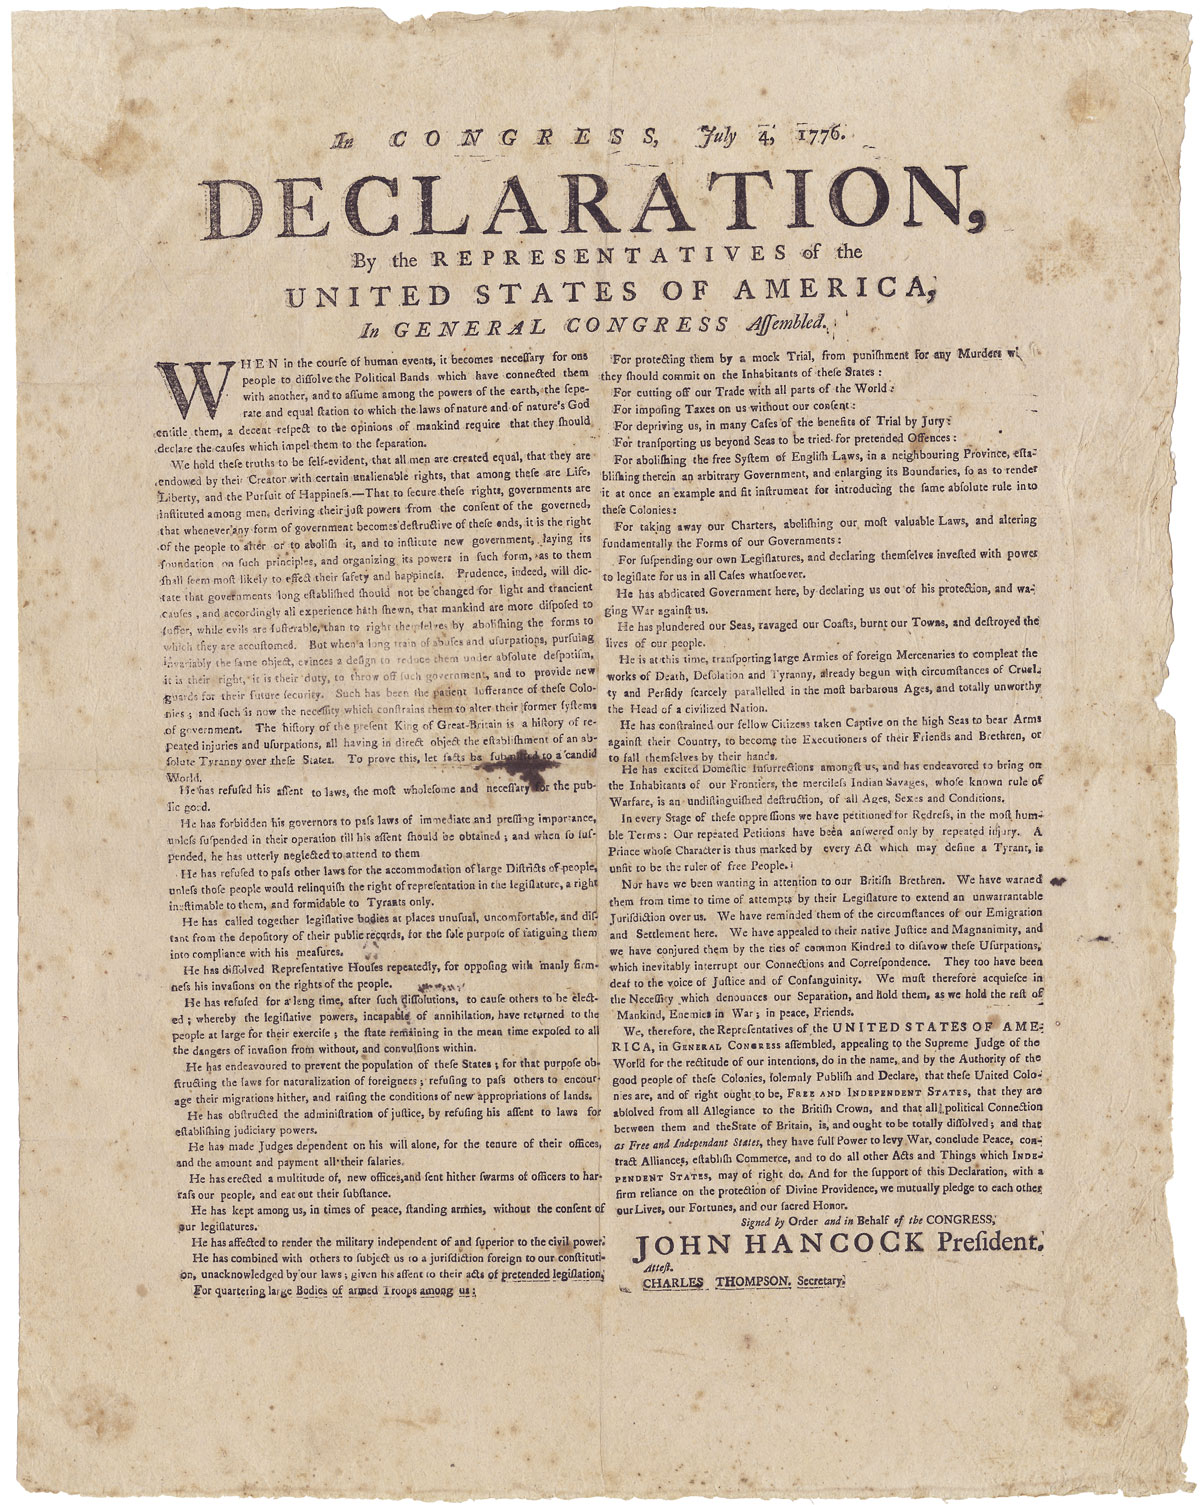 1776 declaration essay Target corporation case study analysis the debate over slavery & the declaration of independence the declaration of independence, written in 1776, announced the.